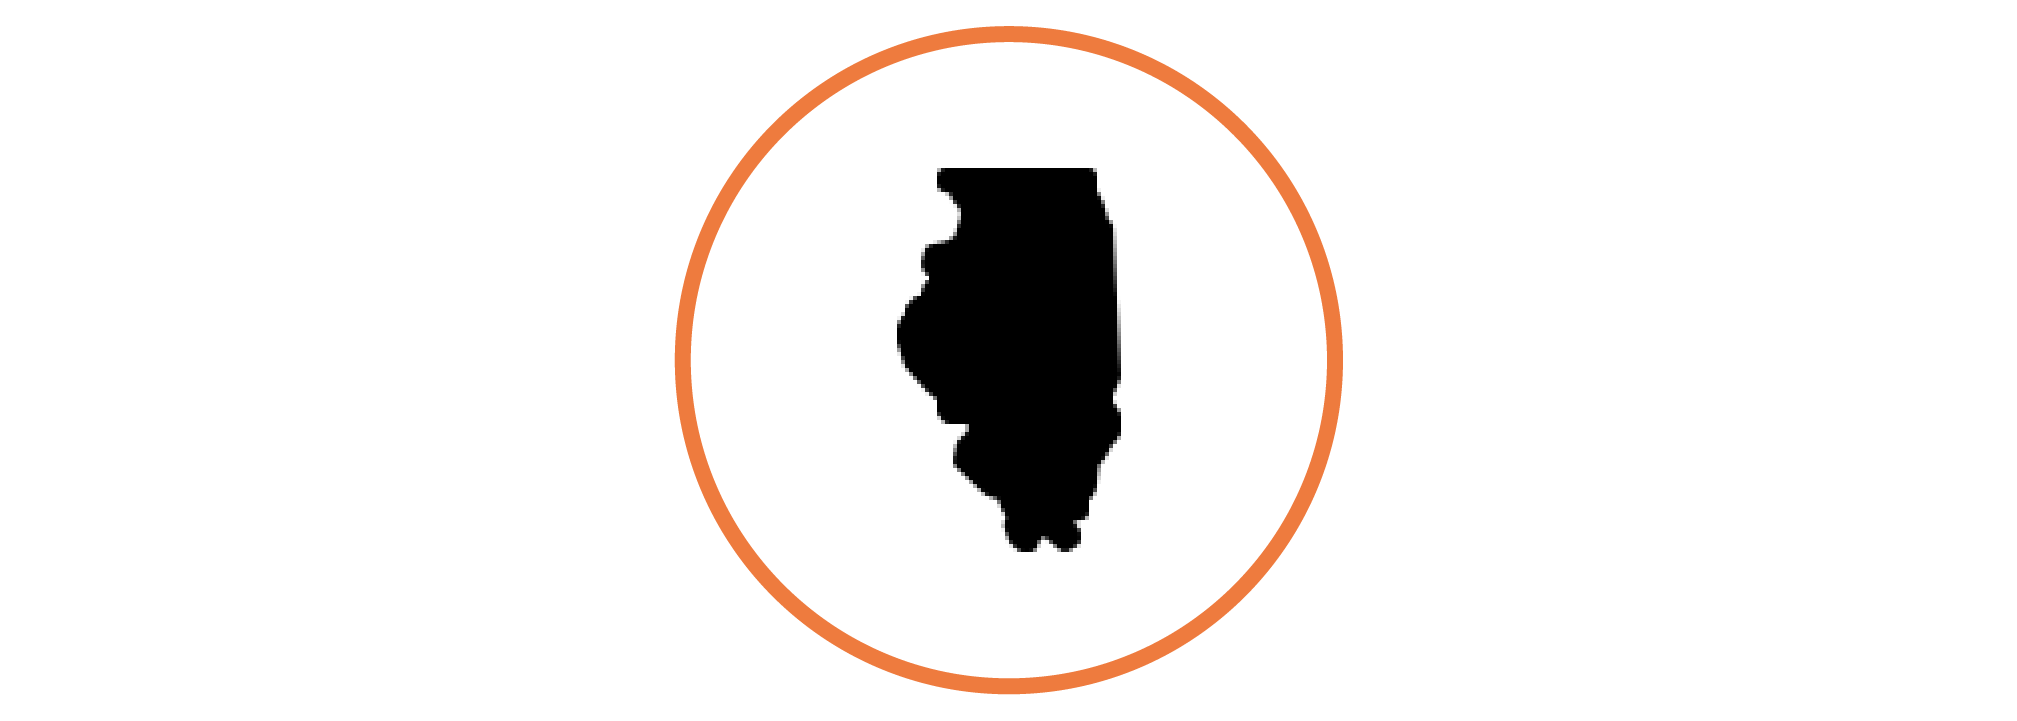 icon of the state of illinois